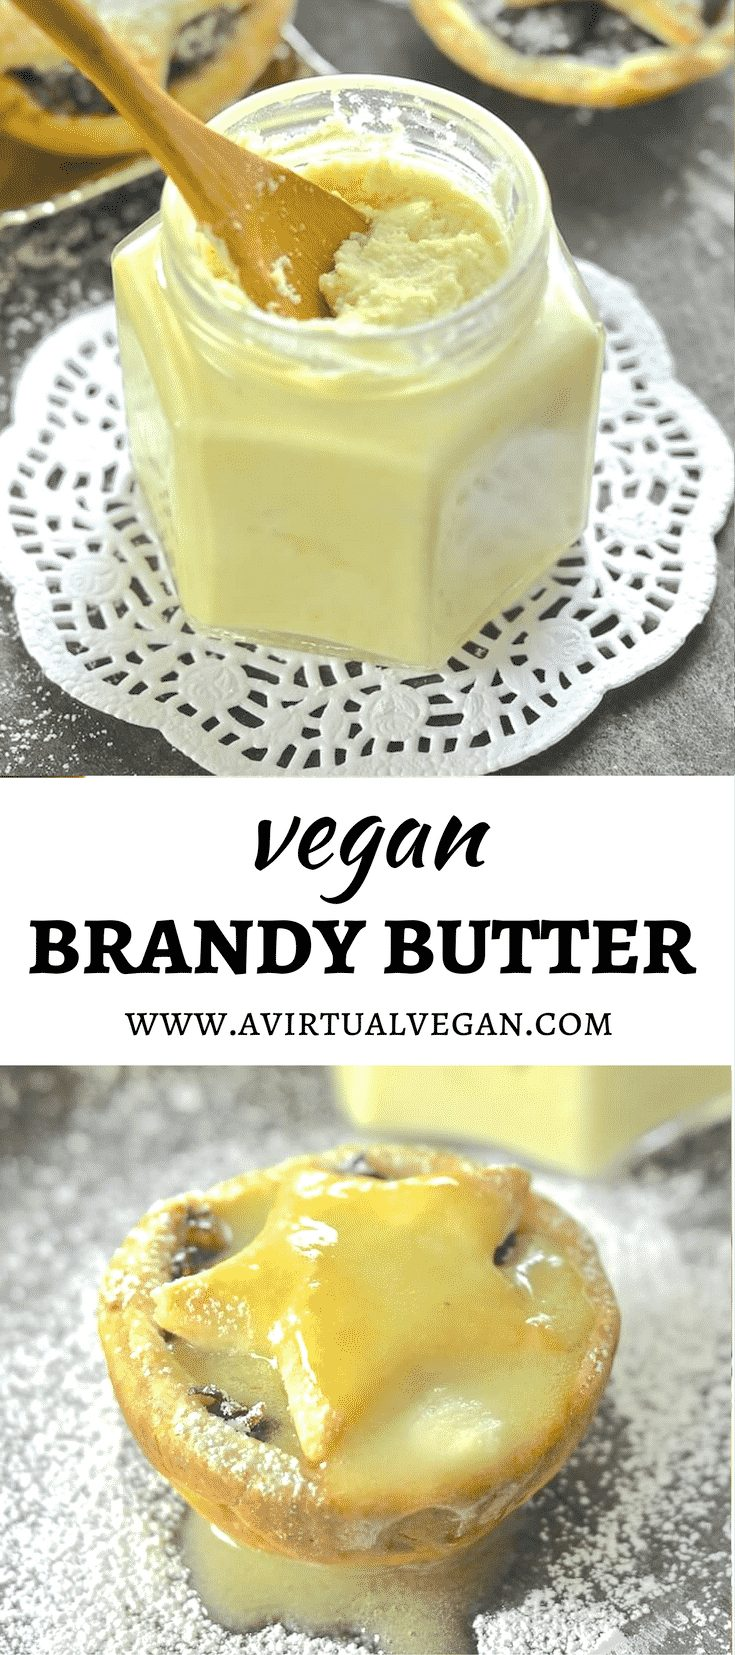 My Vegan Brandy Butter is a hard sauce which, on contact with something warm, becomes a drippy, rich & boozy sauce. Perfect slathered over hot mince pies!